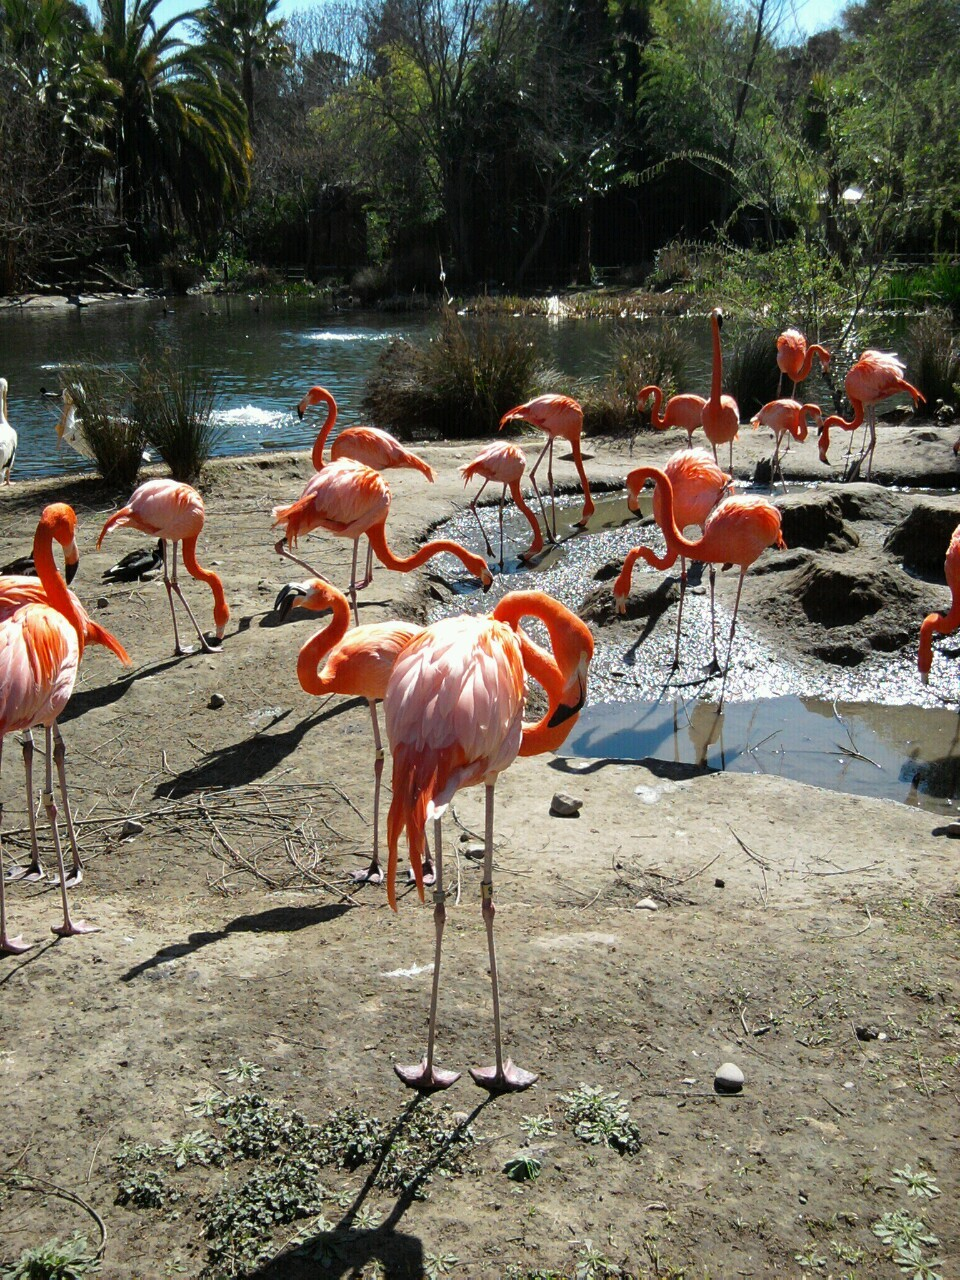 Hold my hand and watch the flamingos